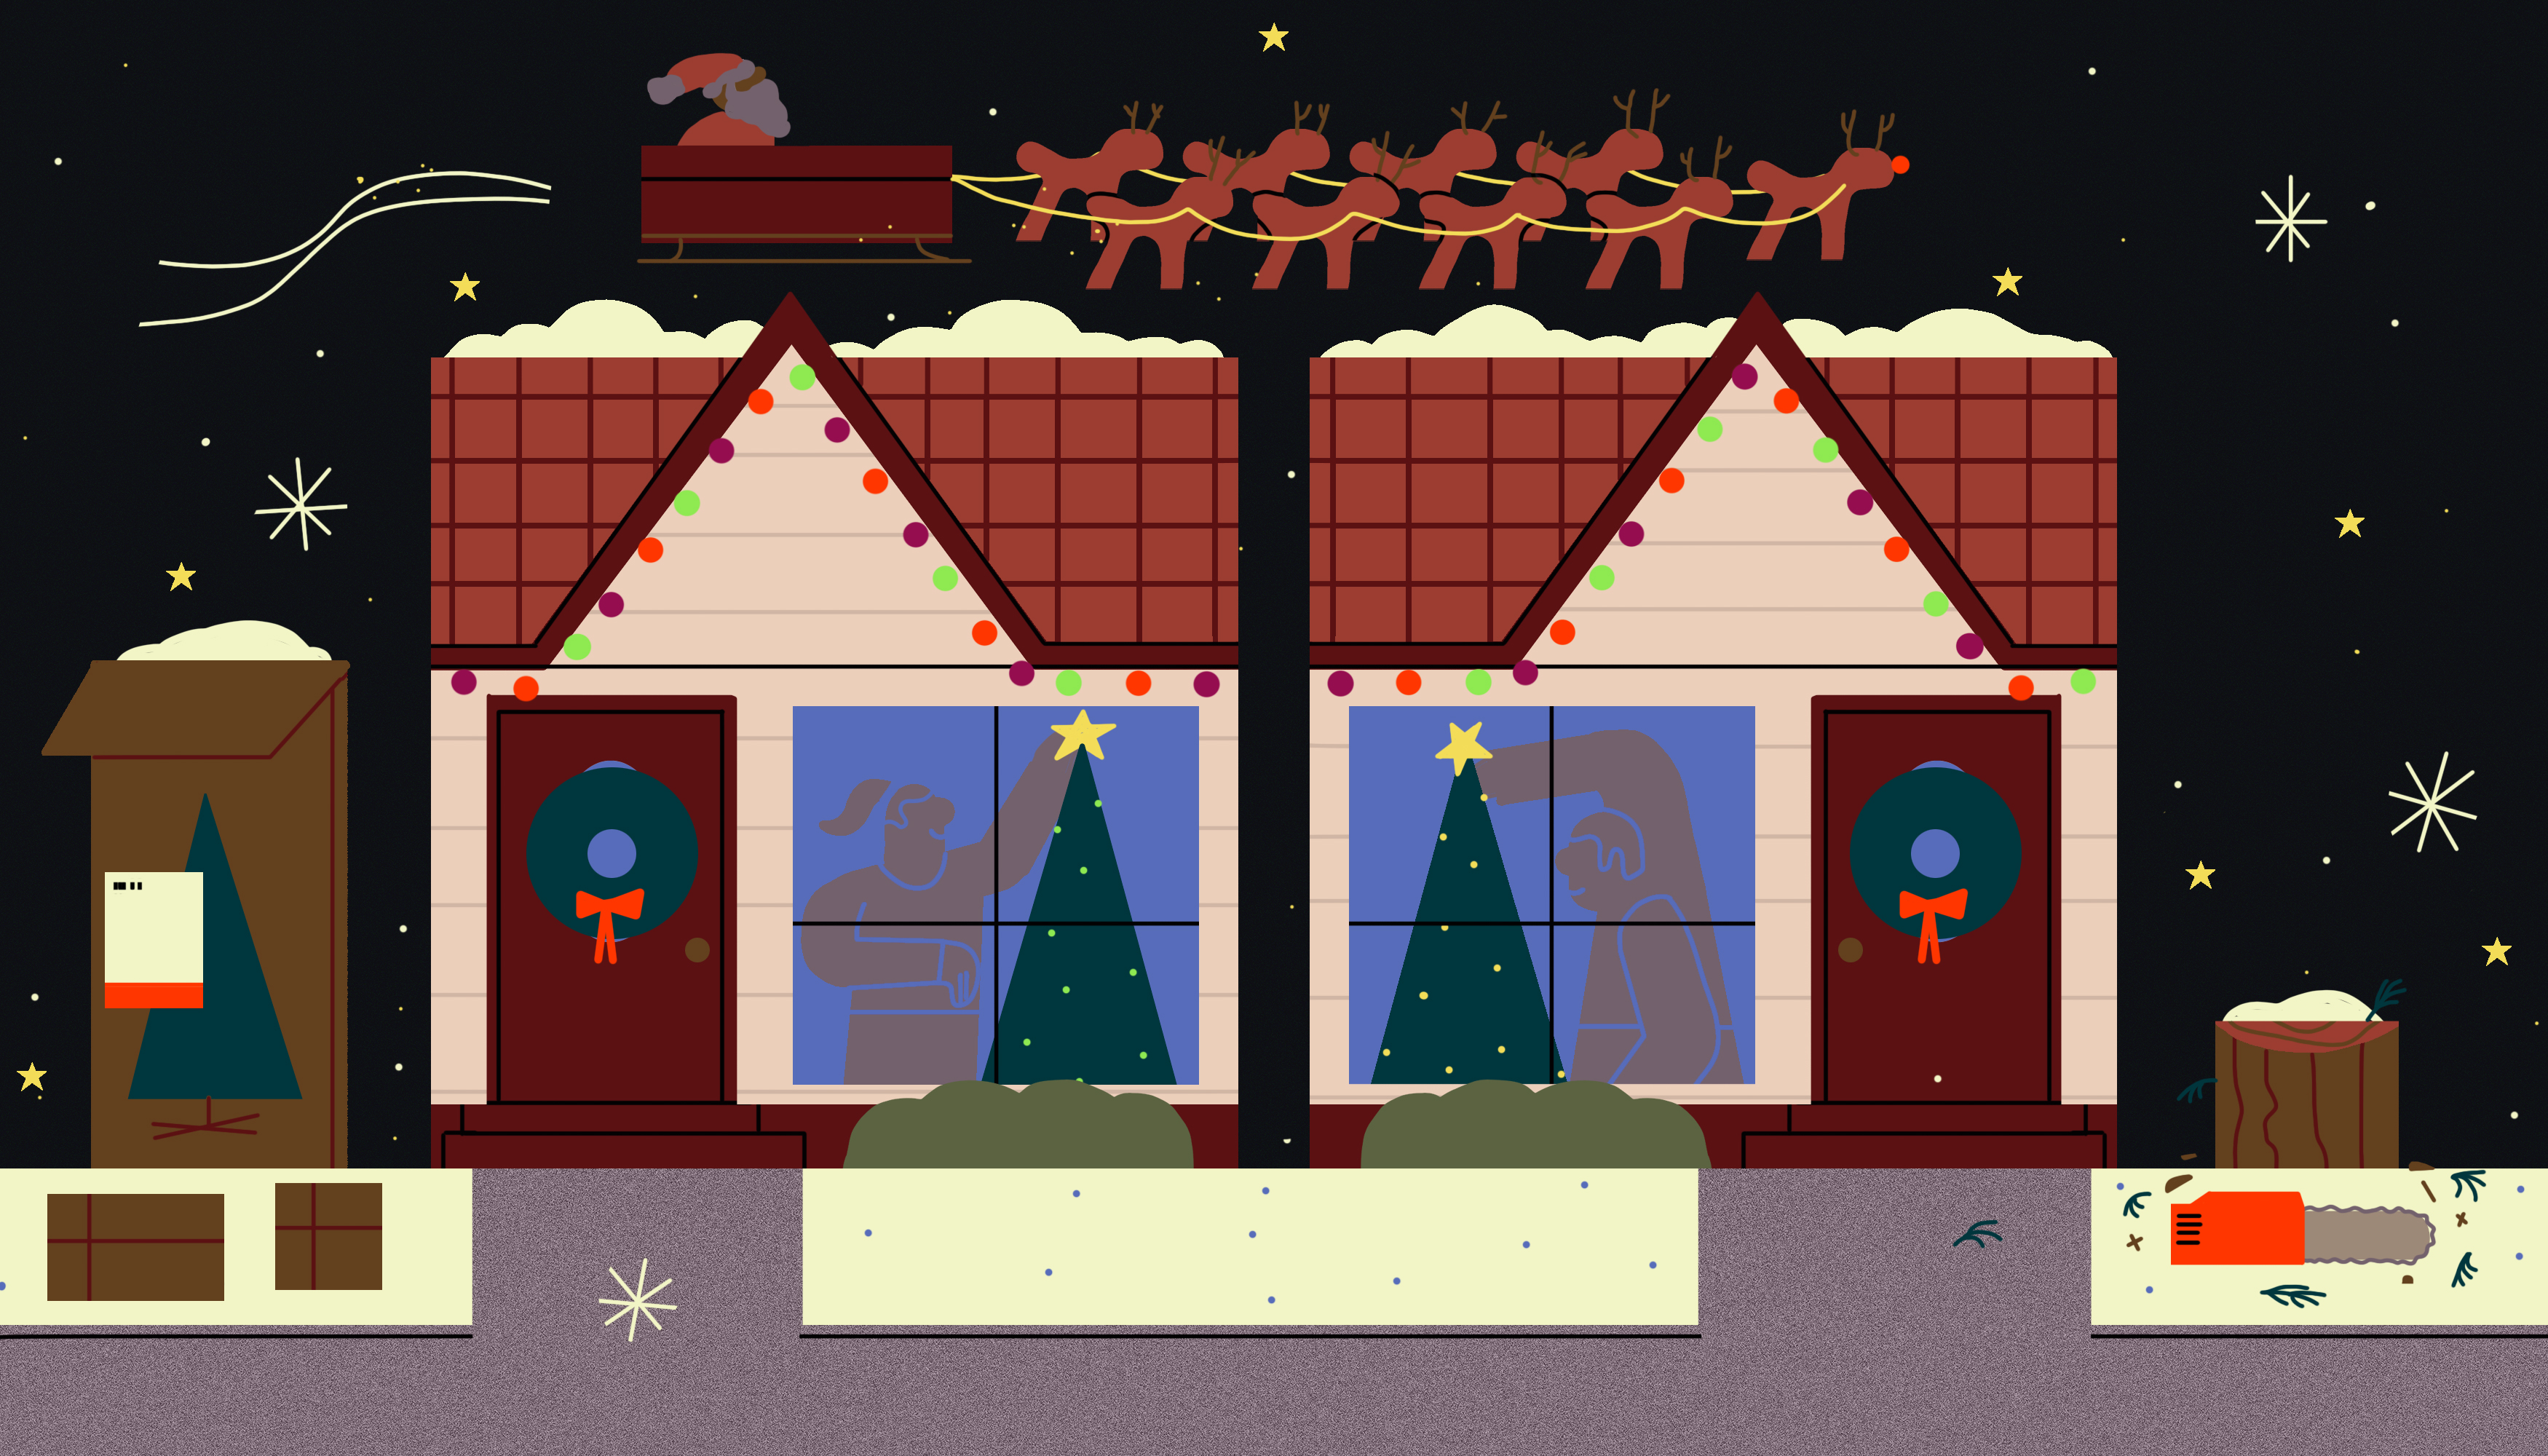 Two identical single-family homes sit side by side on a neighborhood street at night. Through the windows of each home you can see a figure placing a star on two similar Christmas trees. Outside the left home is a cardboard box that the fake tree came in, in front of the right home is evidence that the tree came from a farm. Santa flies with his reindeer in the night sky above. Illustration.